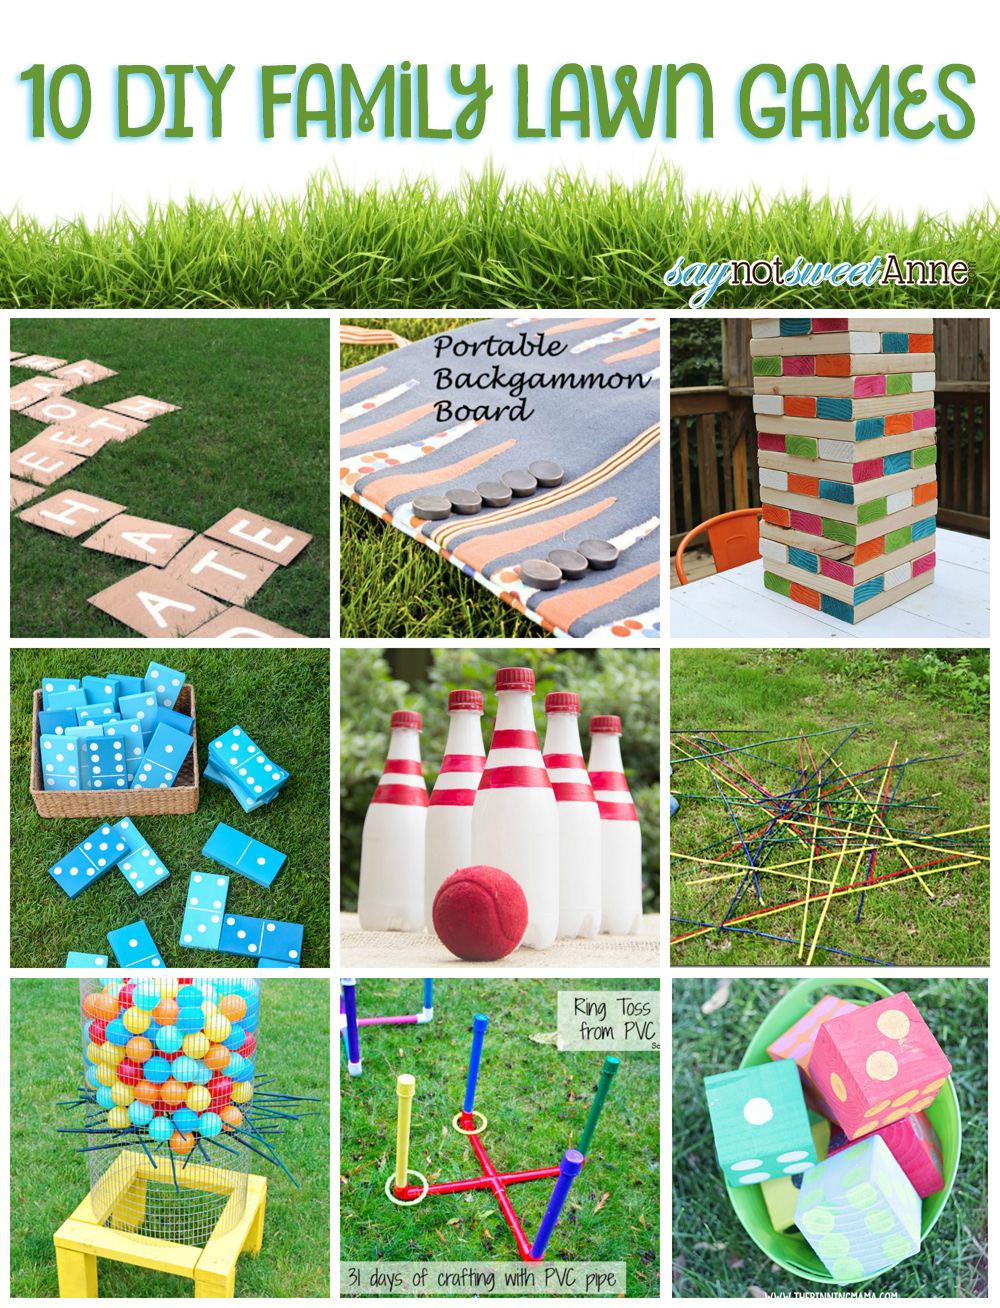 10 Diy Family Lawn Games Sweet Anne Designs